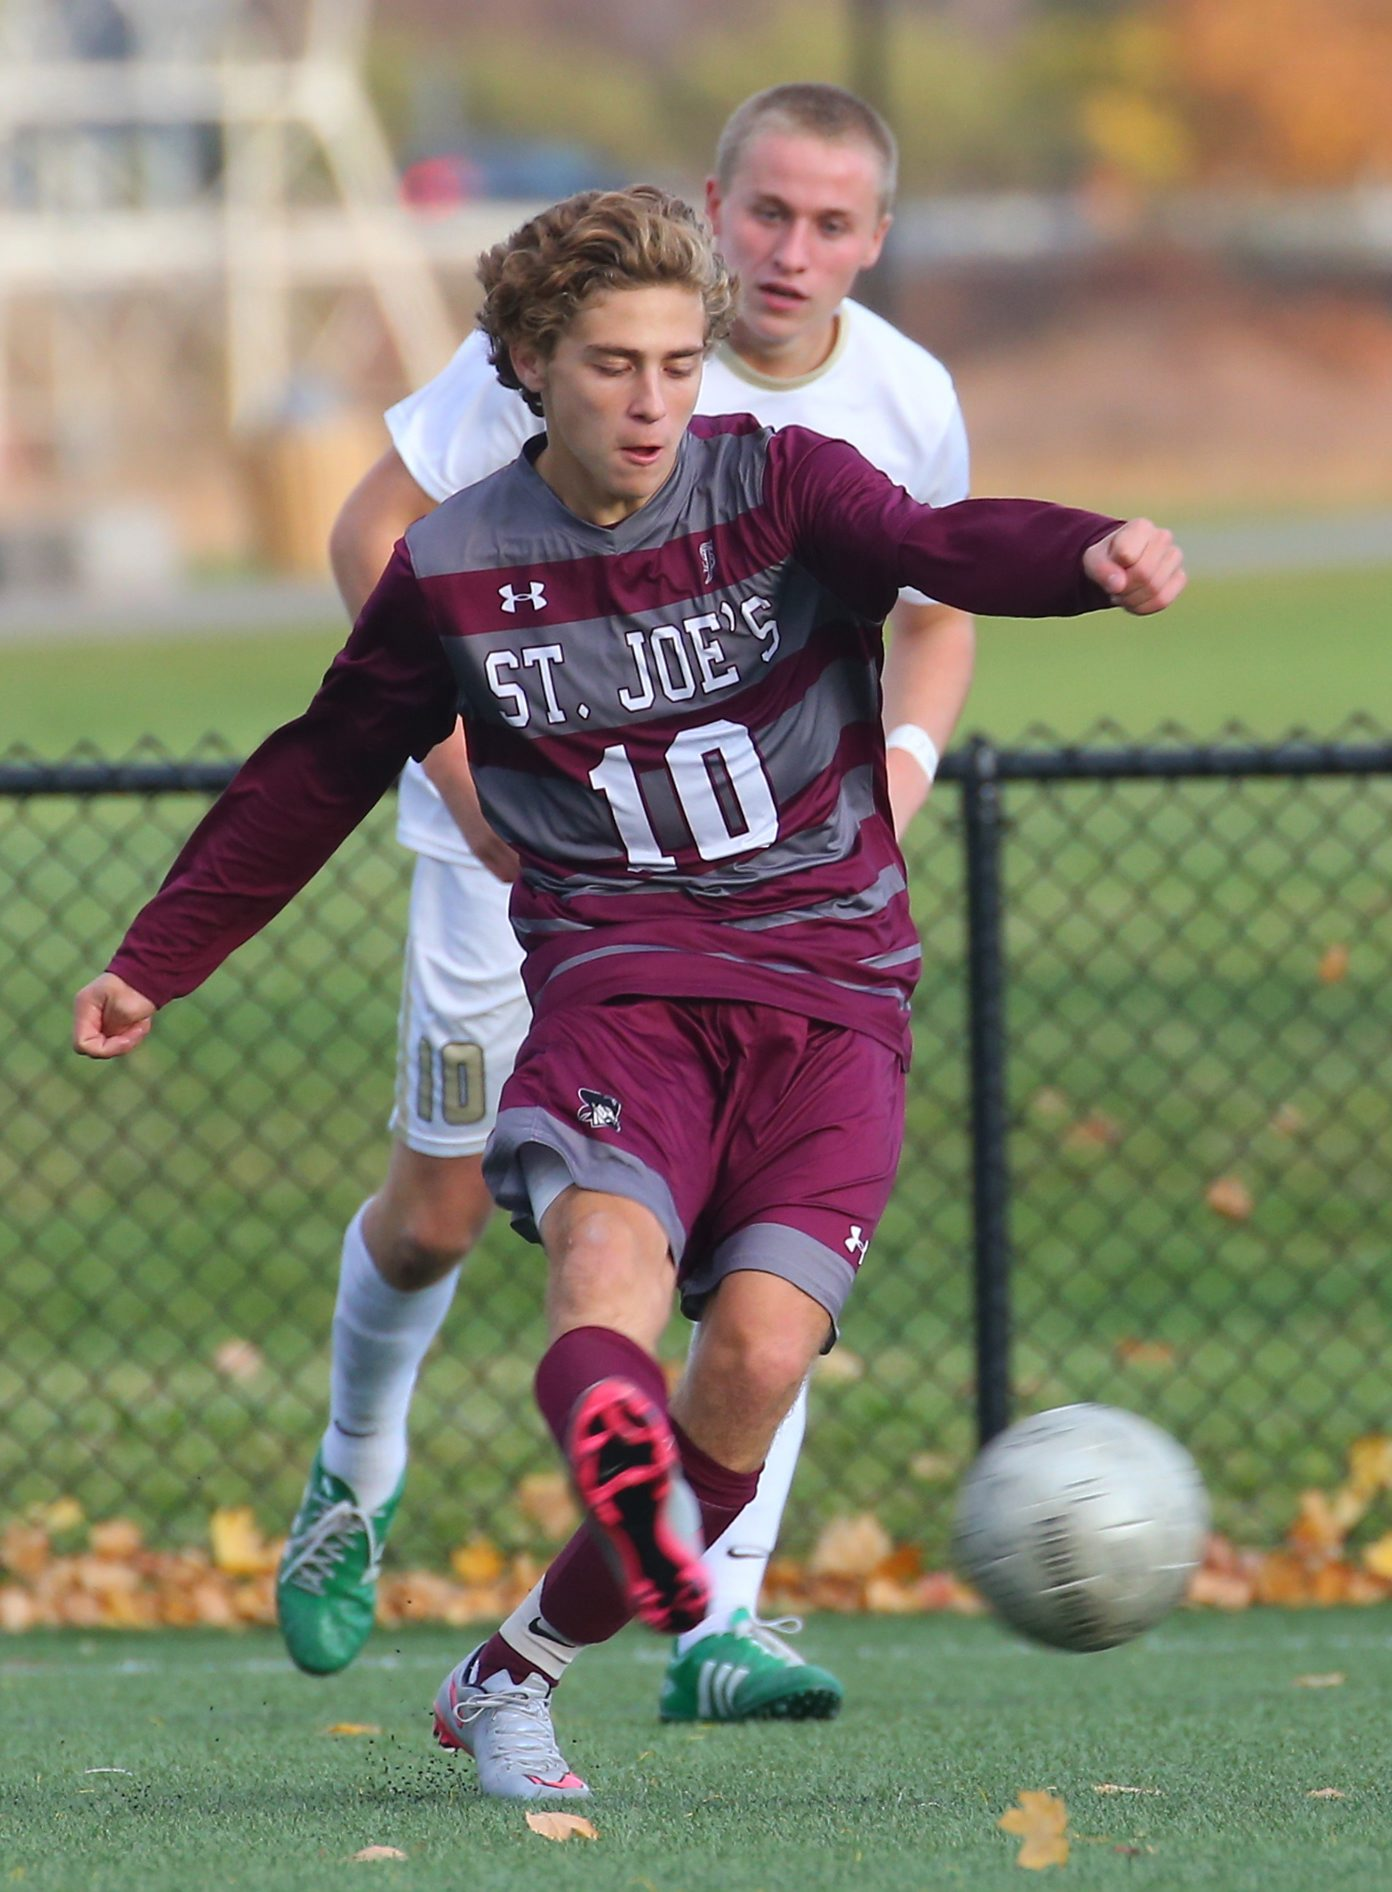 Dominic Miceli and the St. Joe's Marauders are among the many teams that will be in action Friday. The first game of the fall sports season is Wednesday afternoon in Albion.  (John Hickey/Buffalo News)